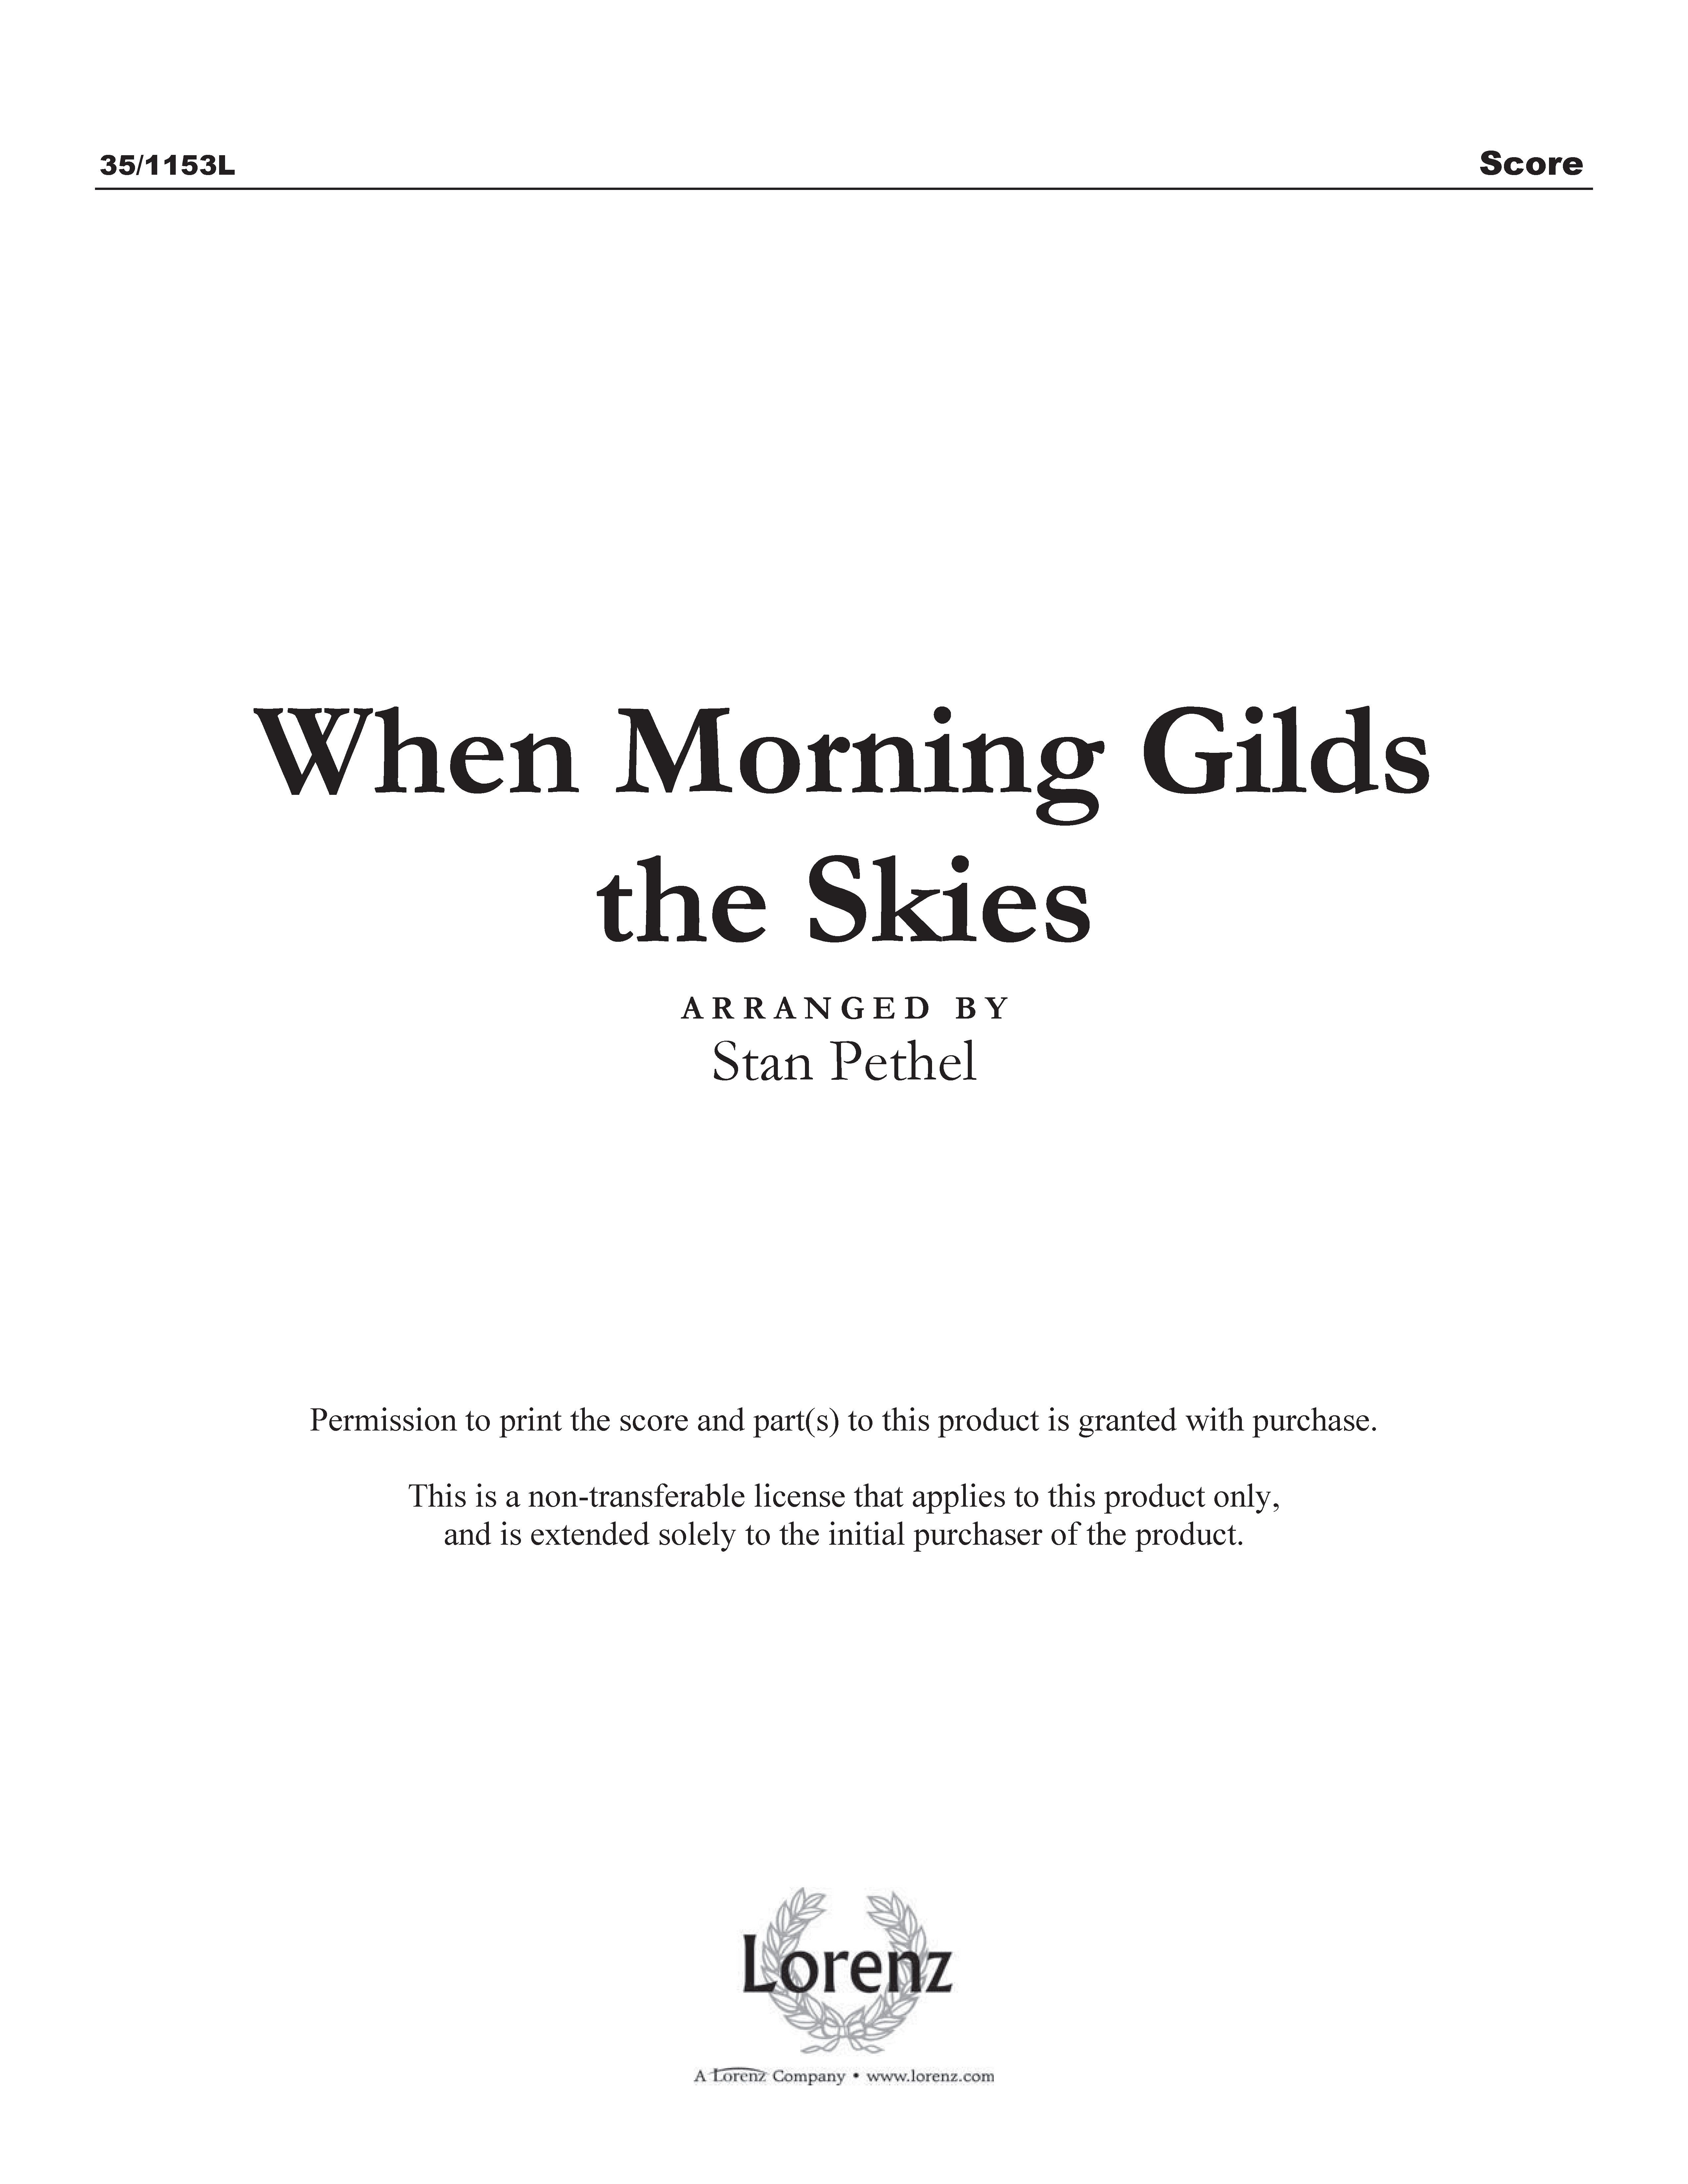 When Morning Gilds the Skies (Digital Delivery)